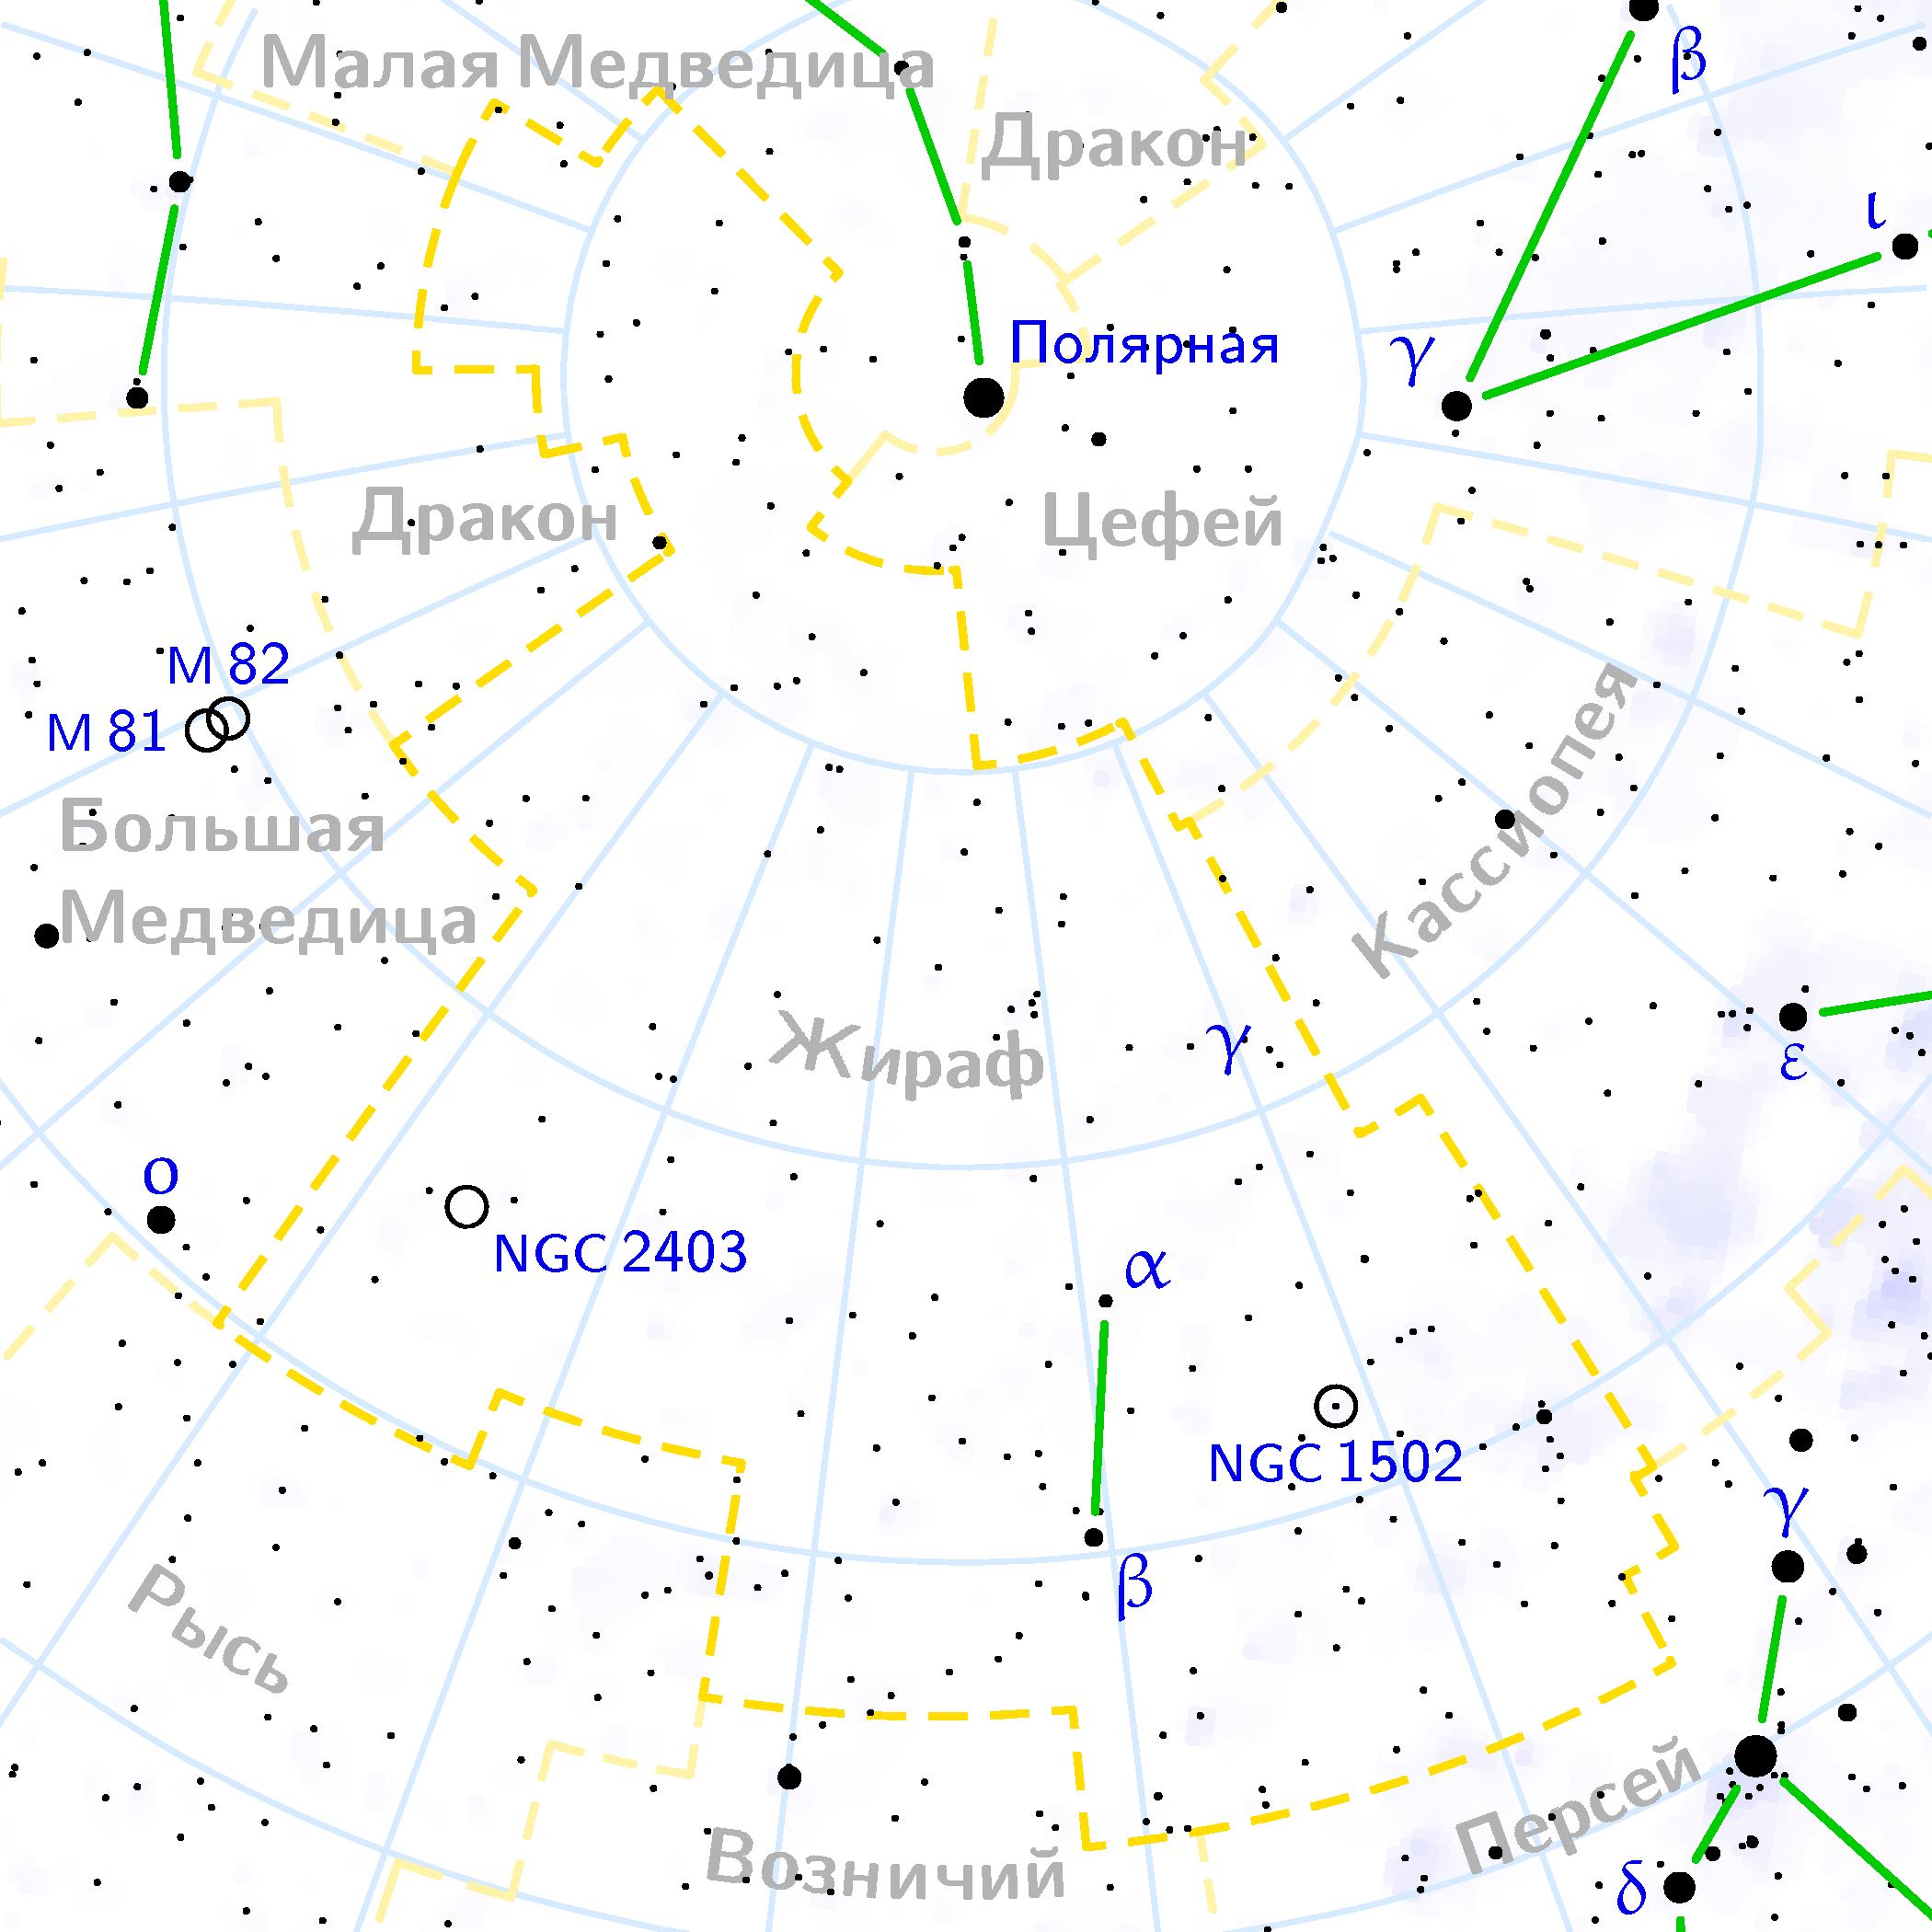 map of milky way with File Camelopardalis Constellation Map Ru Lite on 12920640843 furthermore Laniakea Supercluster furthermore Knots Fuzzies And Other Fun furthermore kicc cam ac besides File Draco constellation map ru lite.